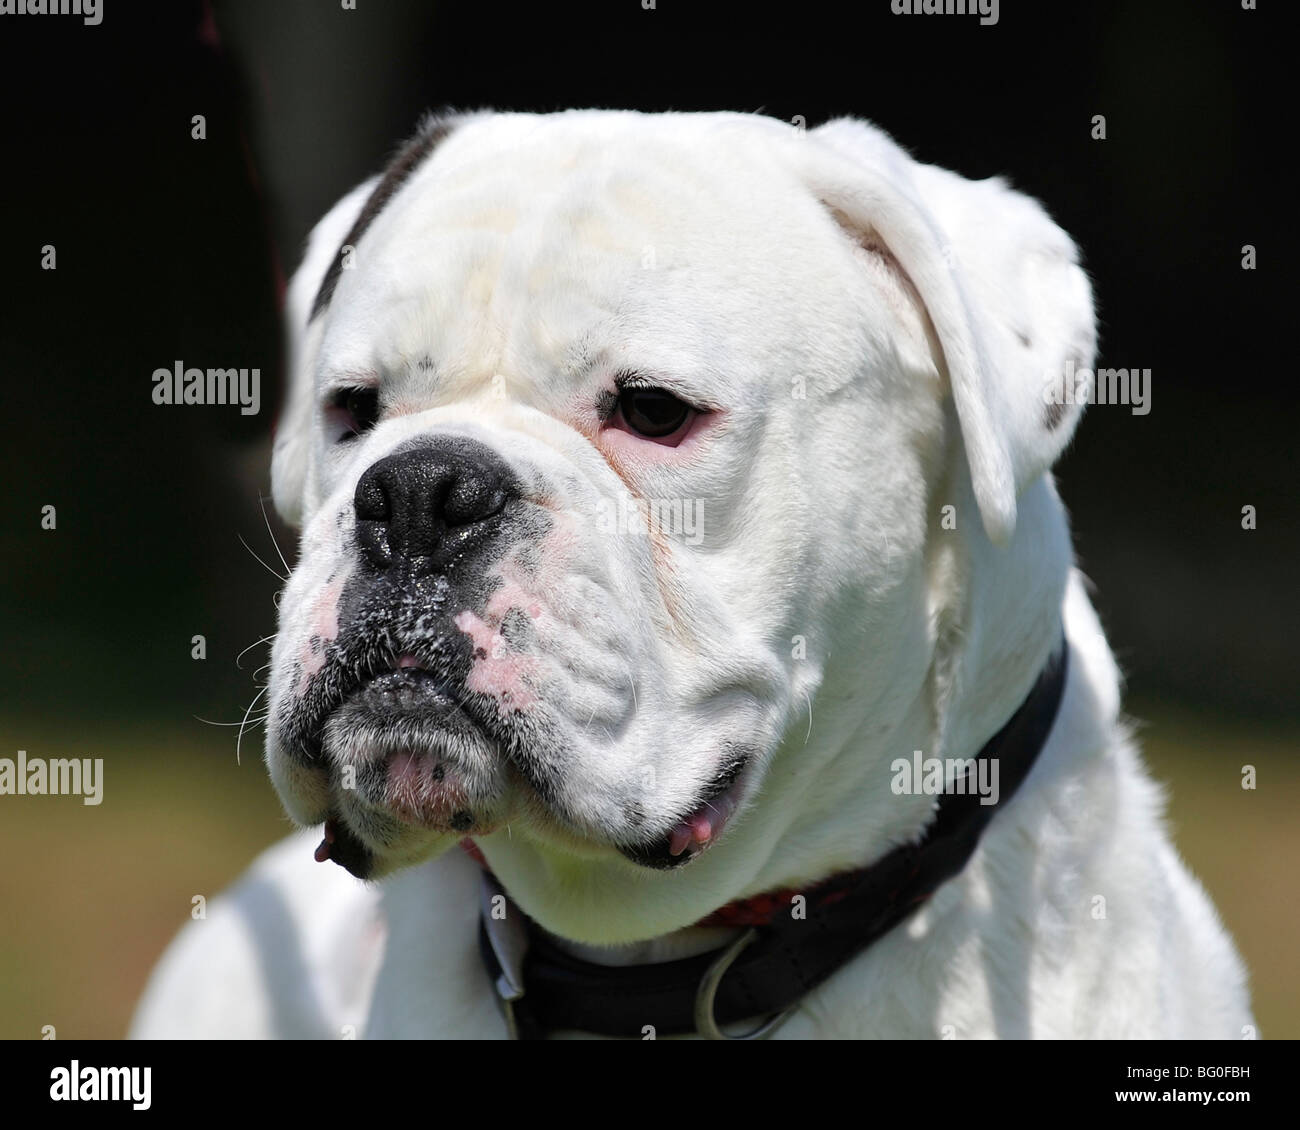 Pit Bull Dog Fight Stock Photos & Pit Bull Dog Fight Stock Images